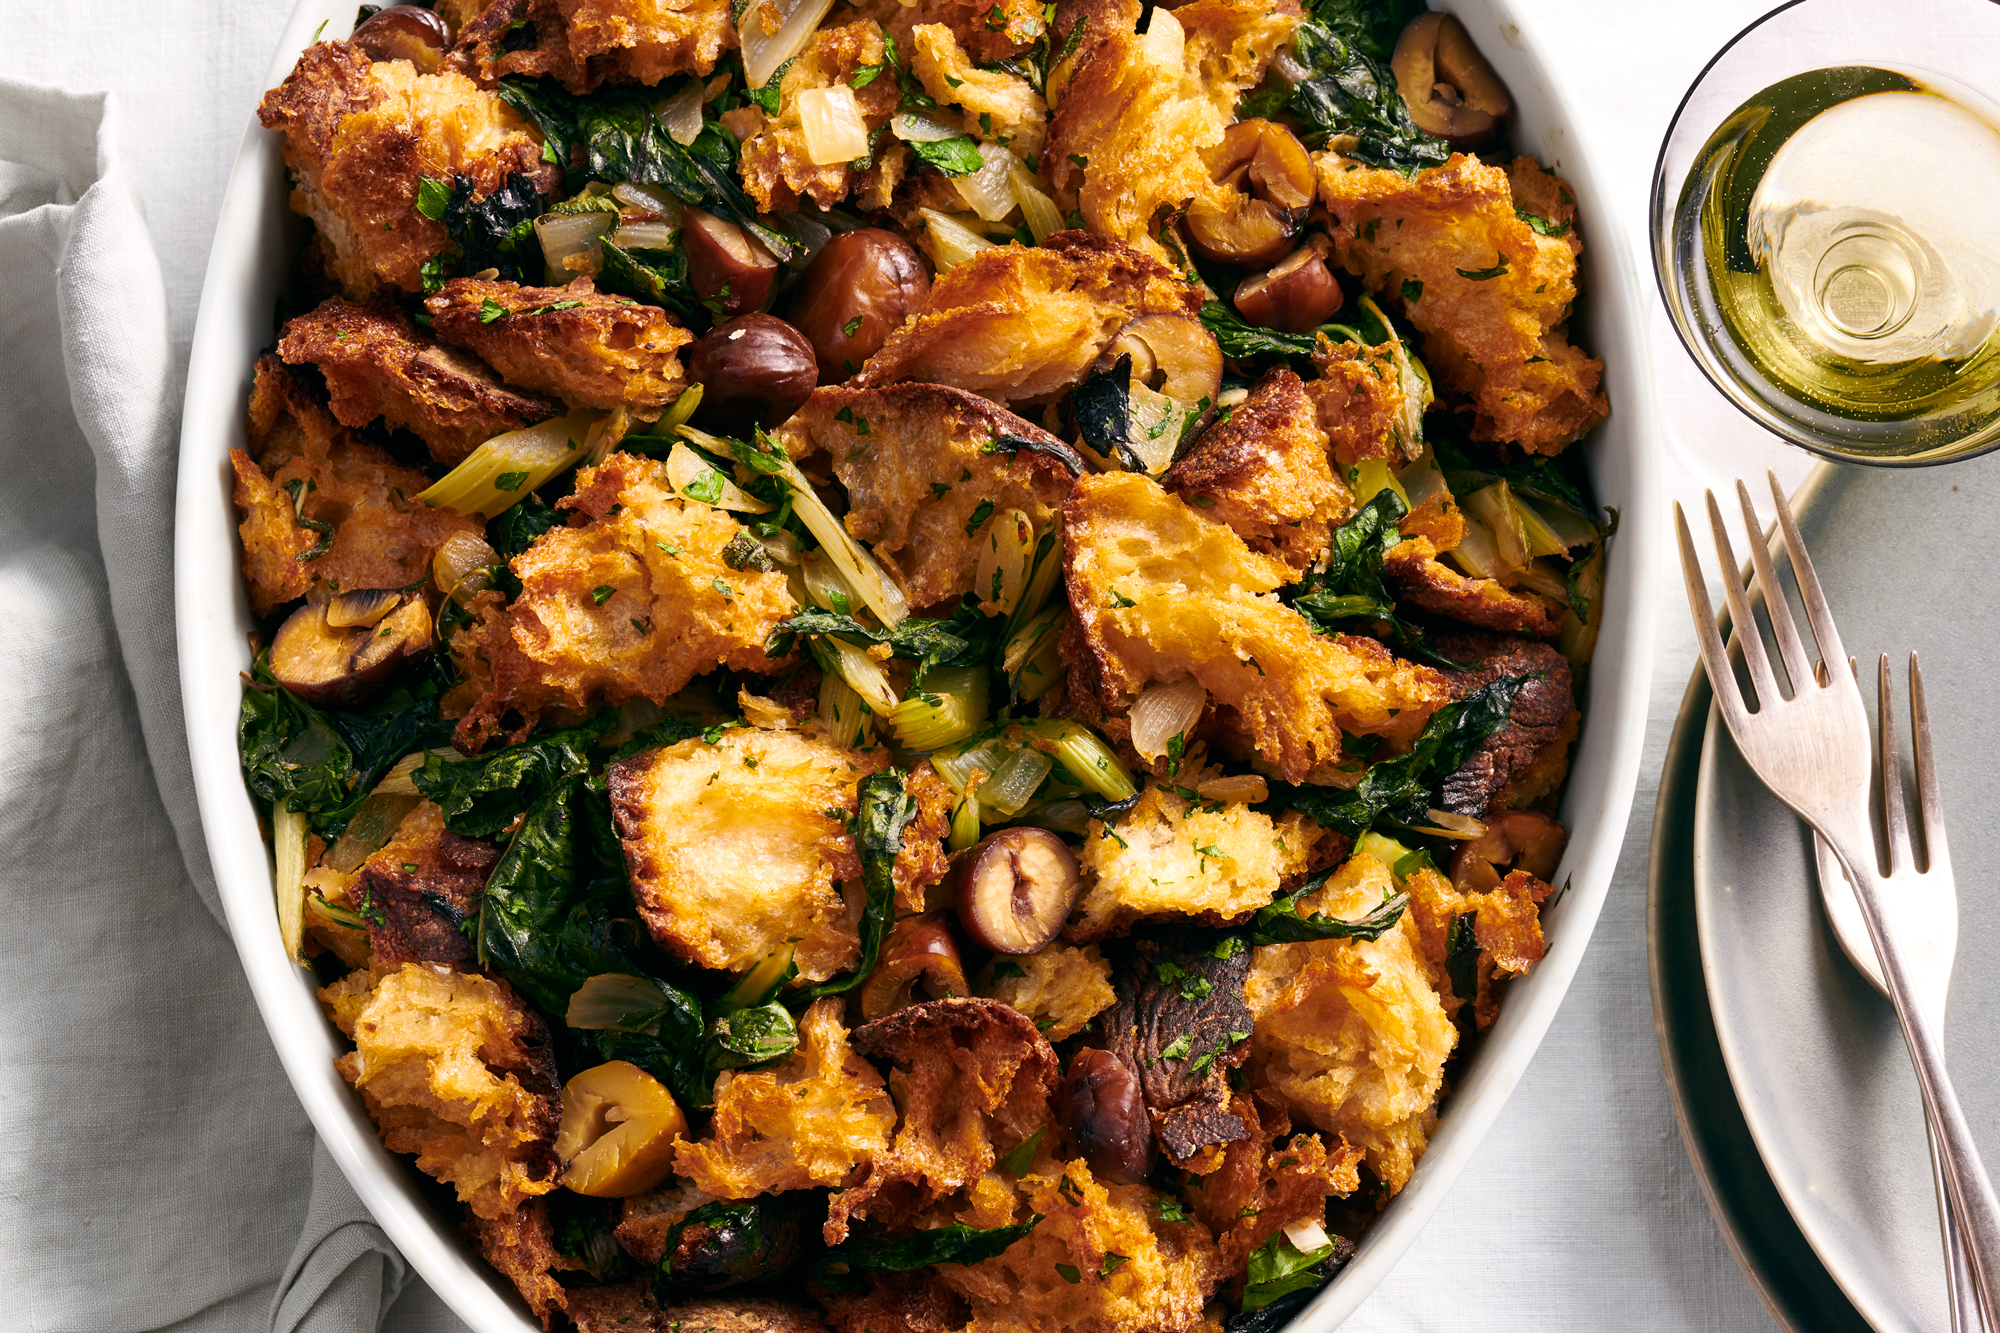 Rustic Bread Stuffing with Swiss Chard and Chestnuts